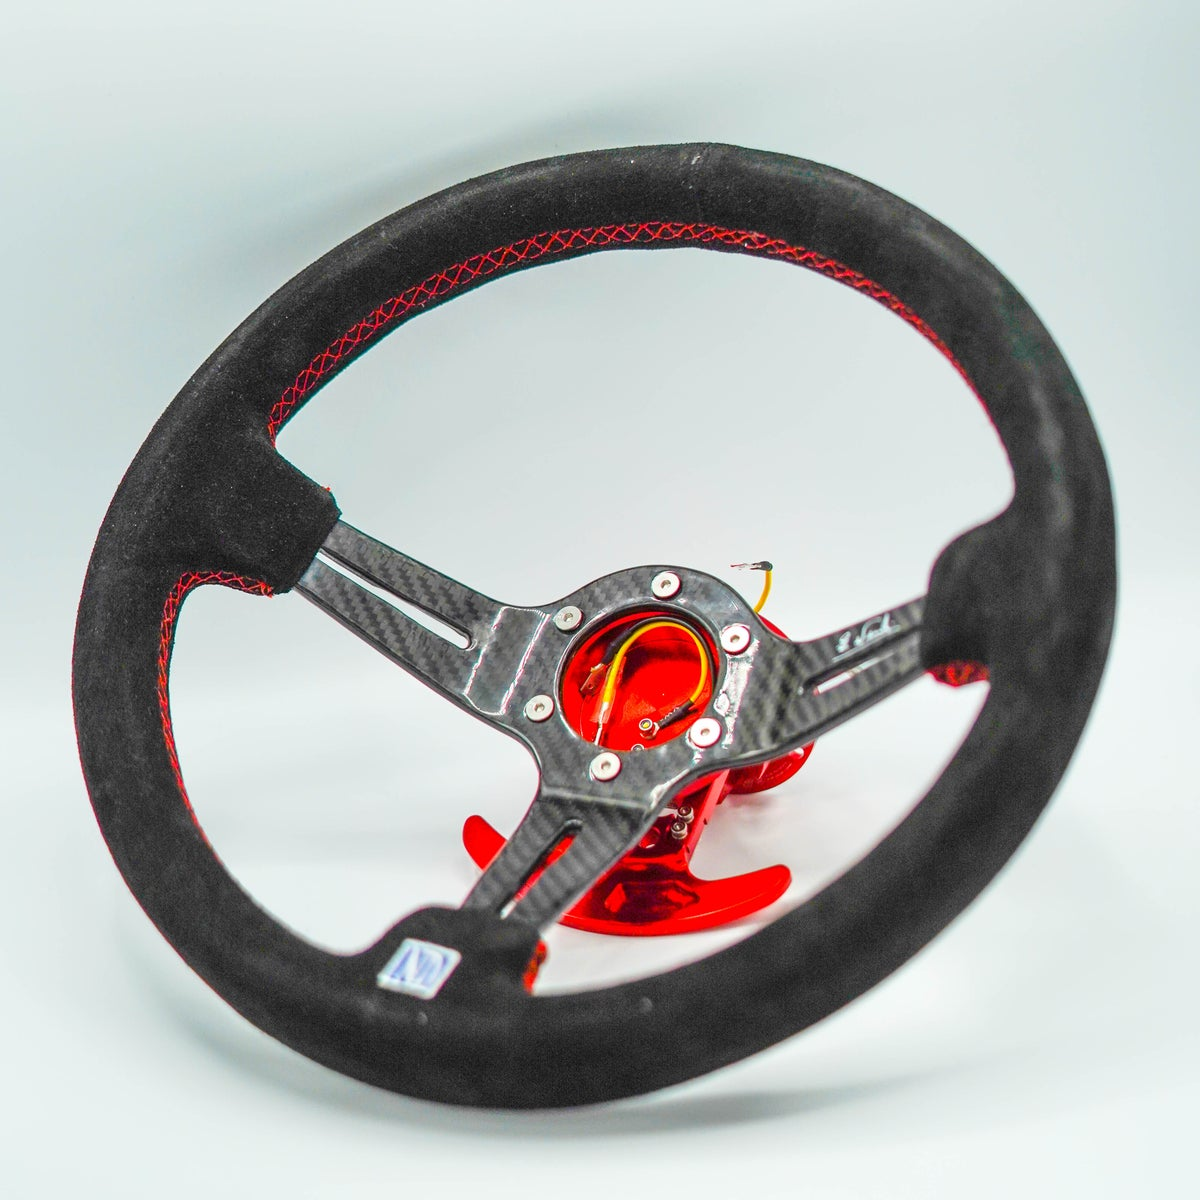 Image of Suede Grip Carbon Steering Wheel